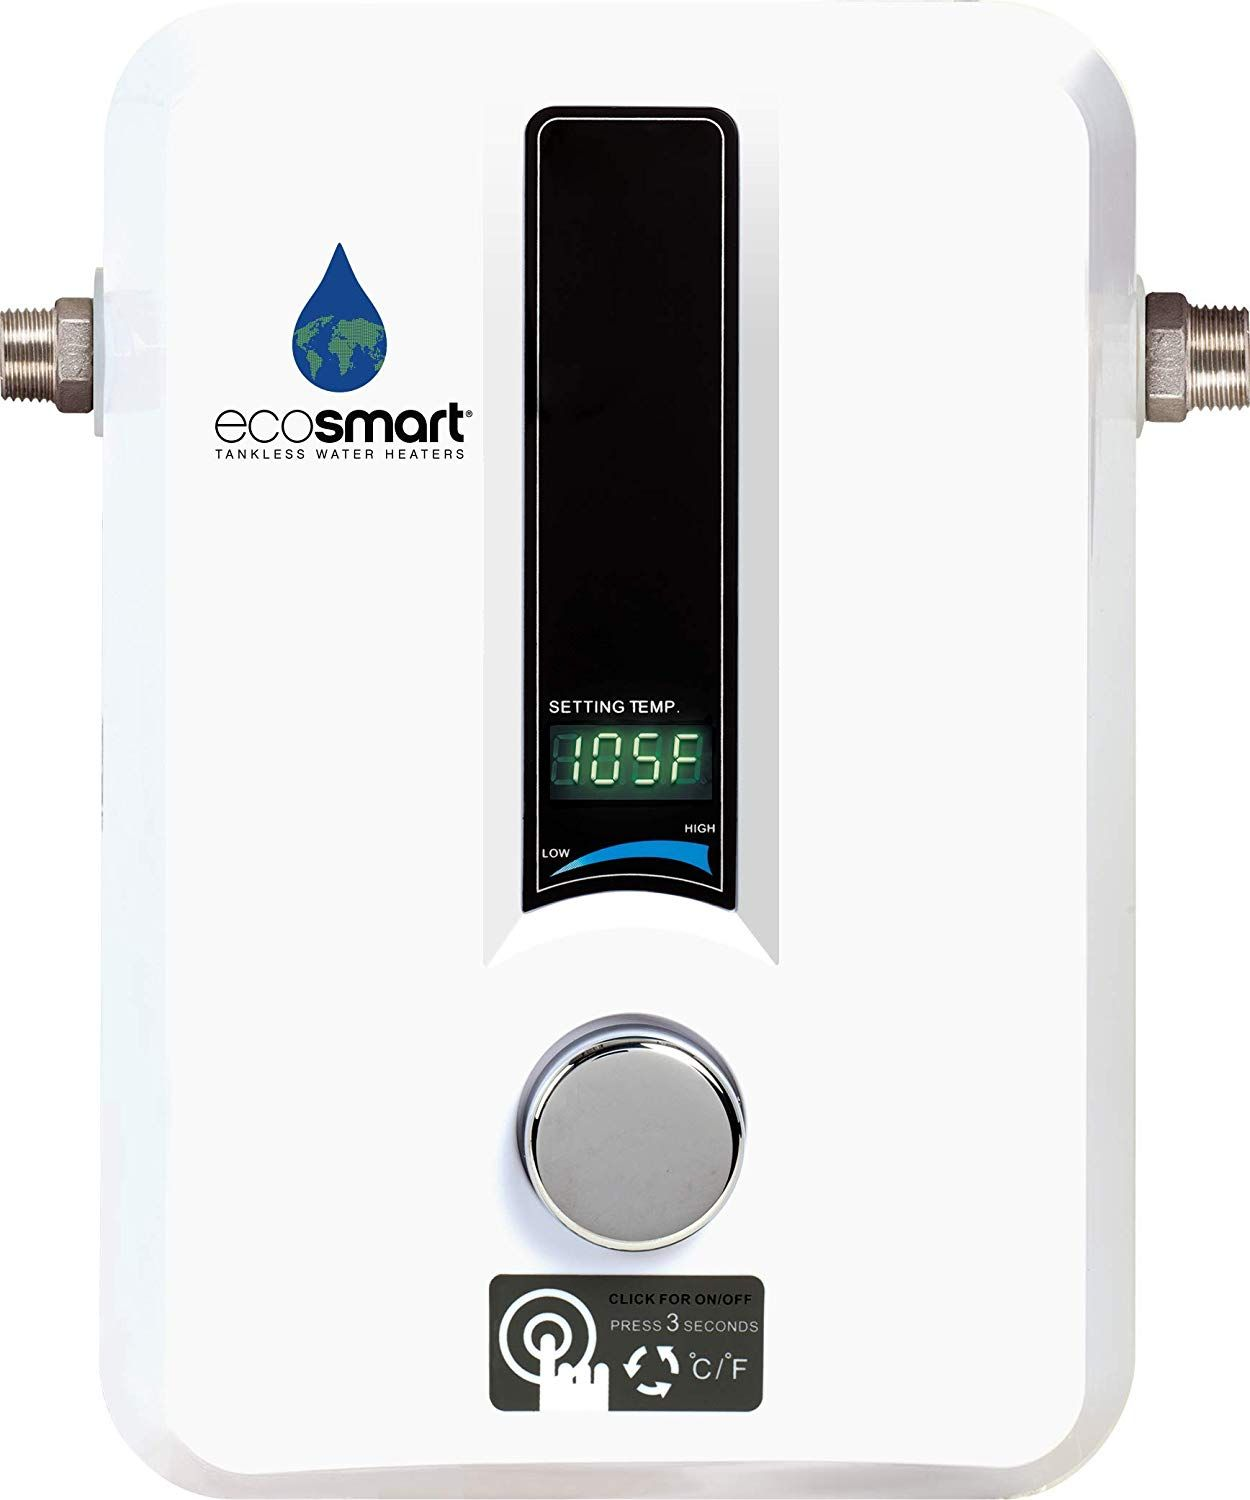 Ecosmart Eco 11 Electric Tankless Water Heater 13kw At 240 Volts With Patented Self Modulating Technology Instant Hot Water Heater Amazon C Etc In 2019